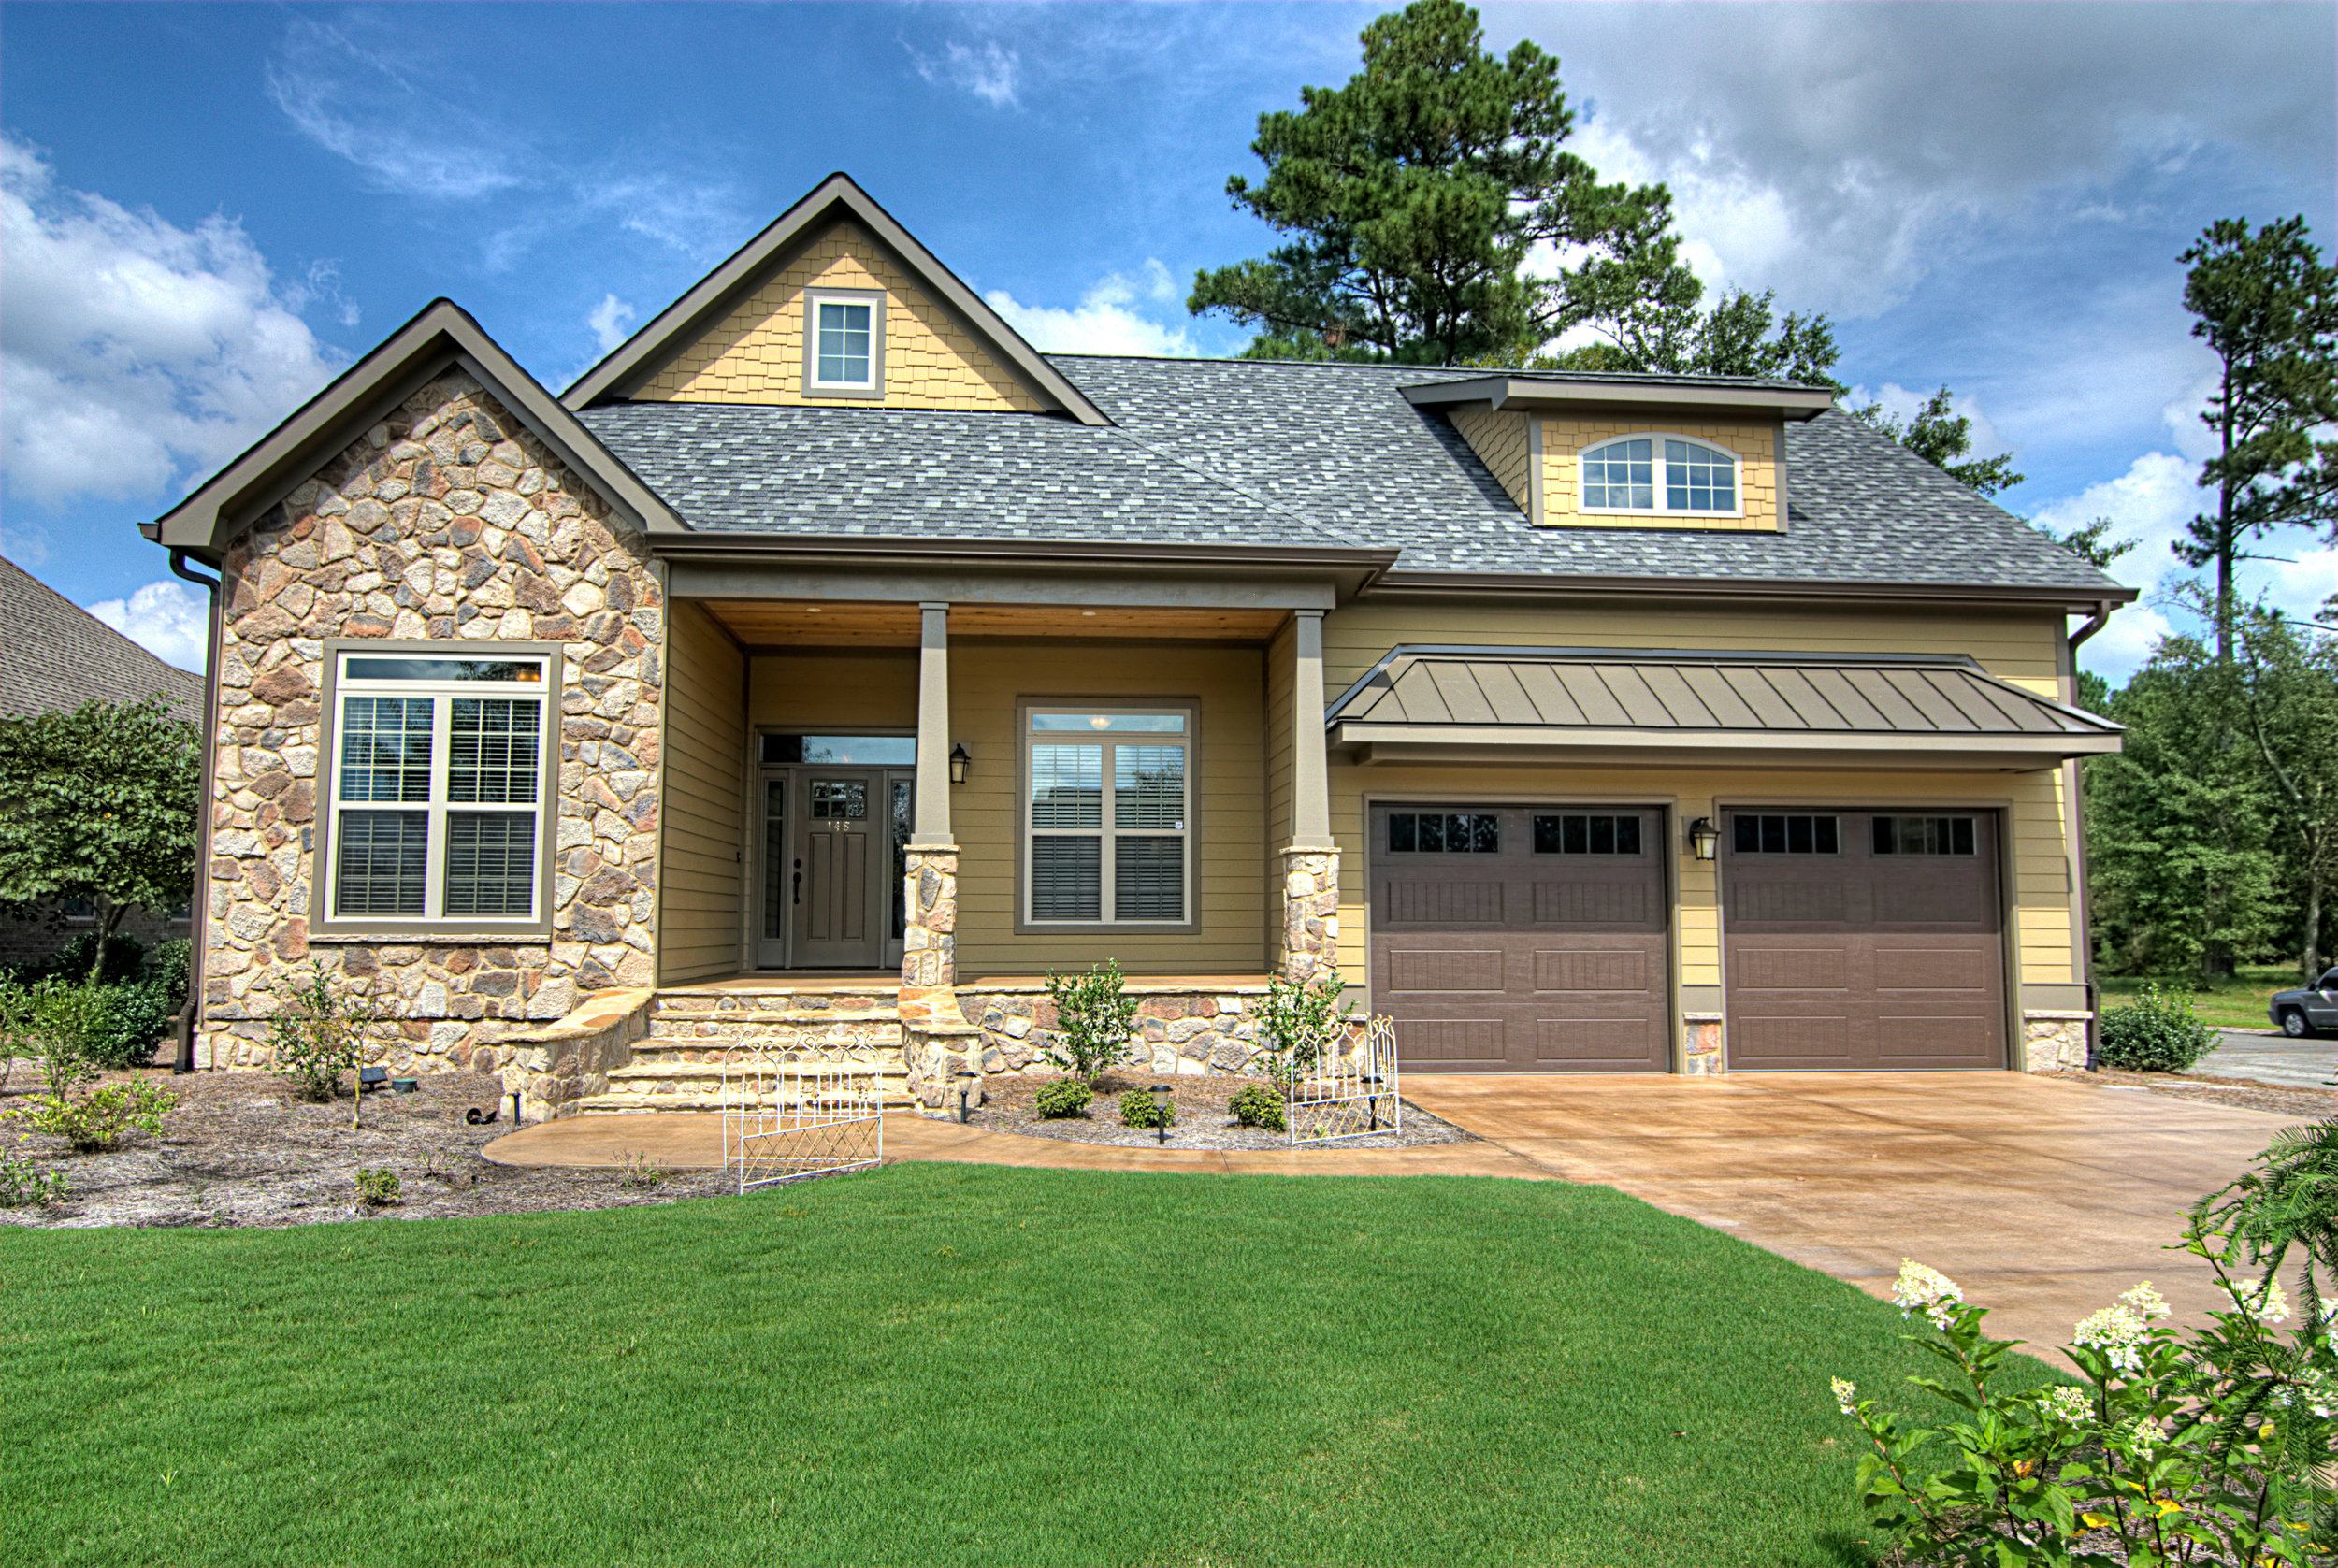 148 Legacy Woods Dr Wallace NC-print-002-Front Exterior-3900x2616-300dpi.jpg